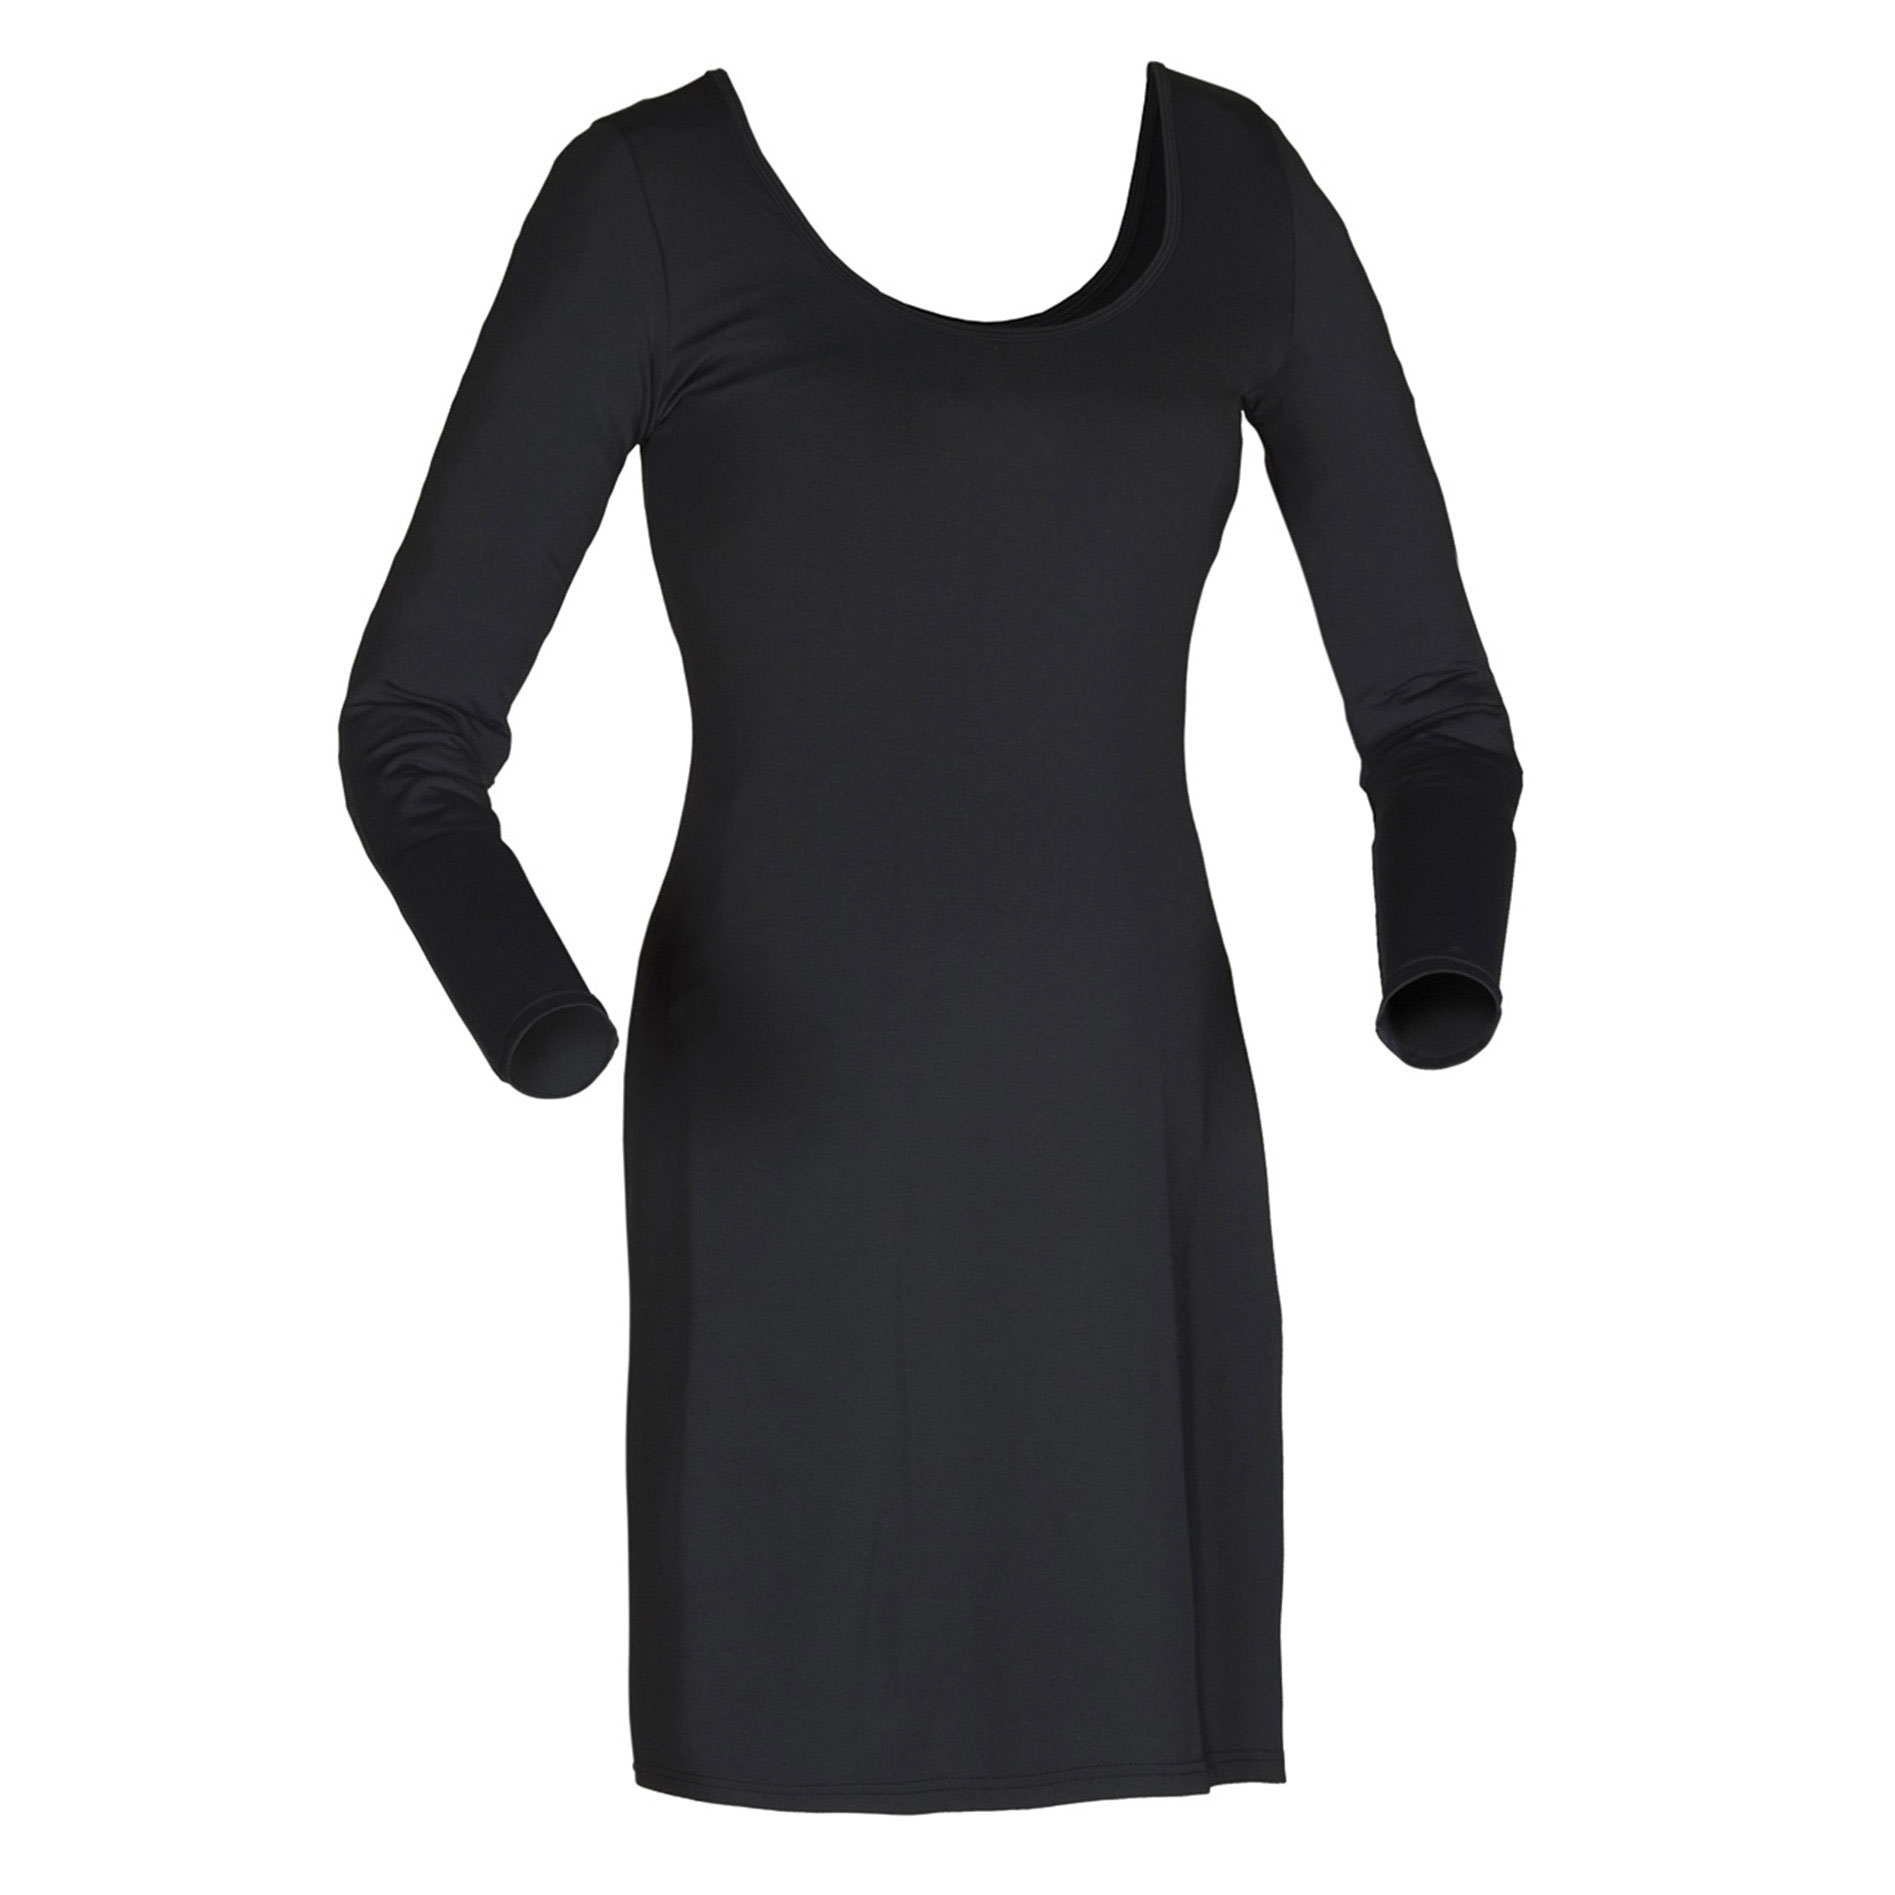 Women's Full Length Scoop Neck Dress-